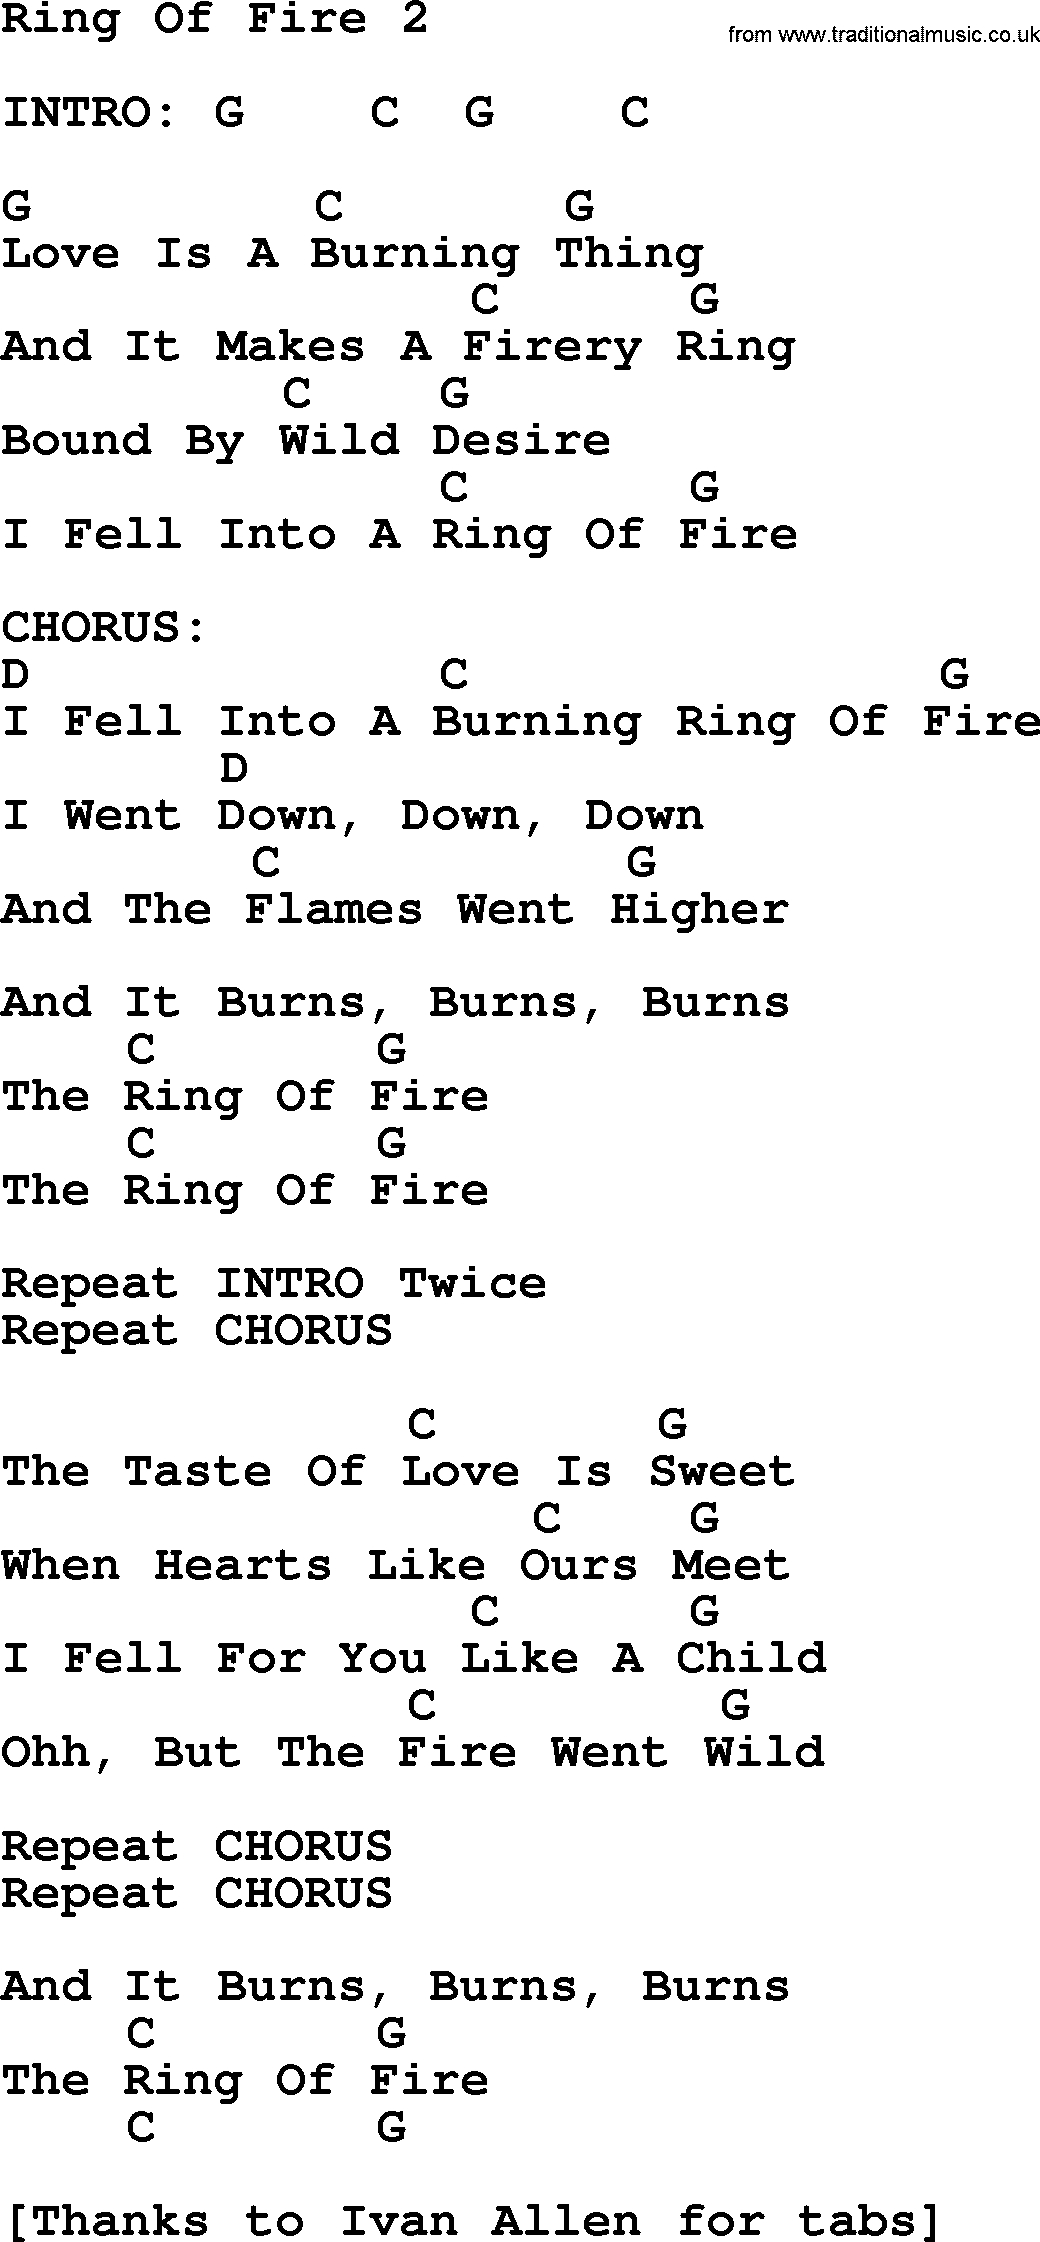 Ring Of Fire Chords Johnny Cash Song Ring Of Fire 2 Lyrics And Chords